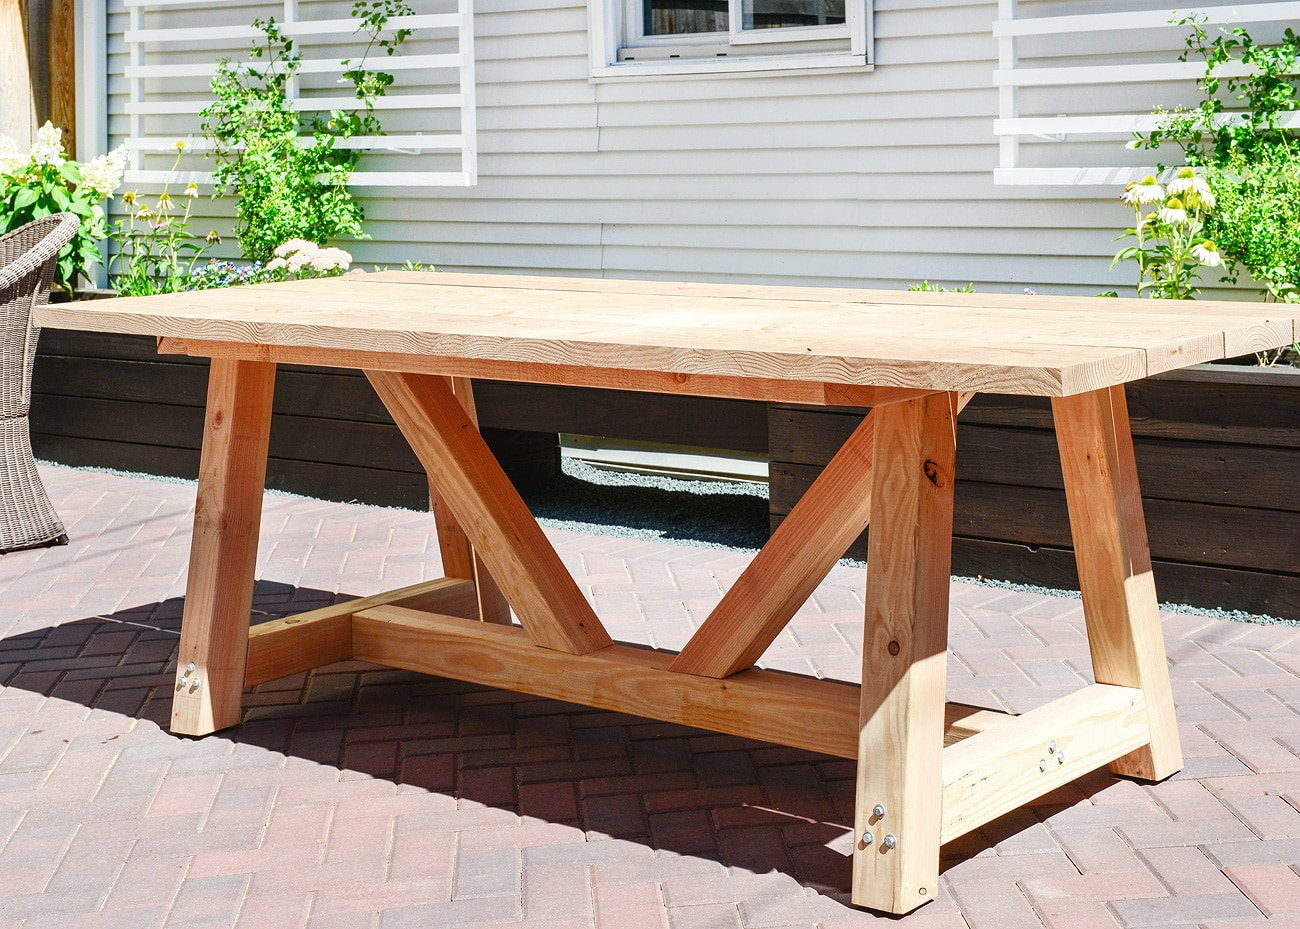 Plans to build wood picnic table quick woodworking projects for Patio house plans